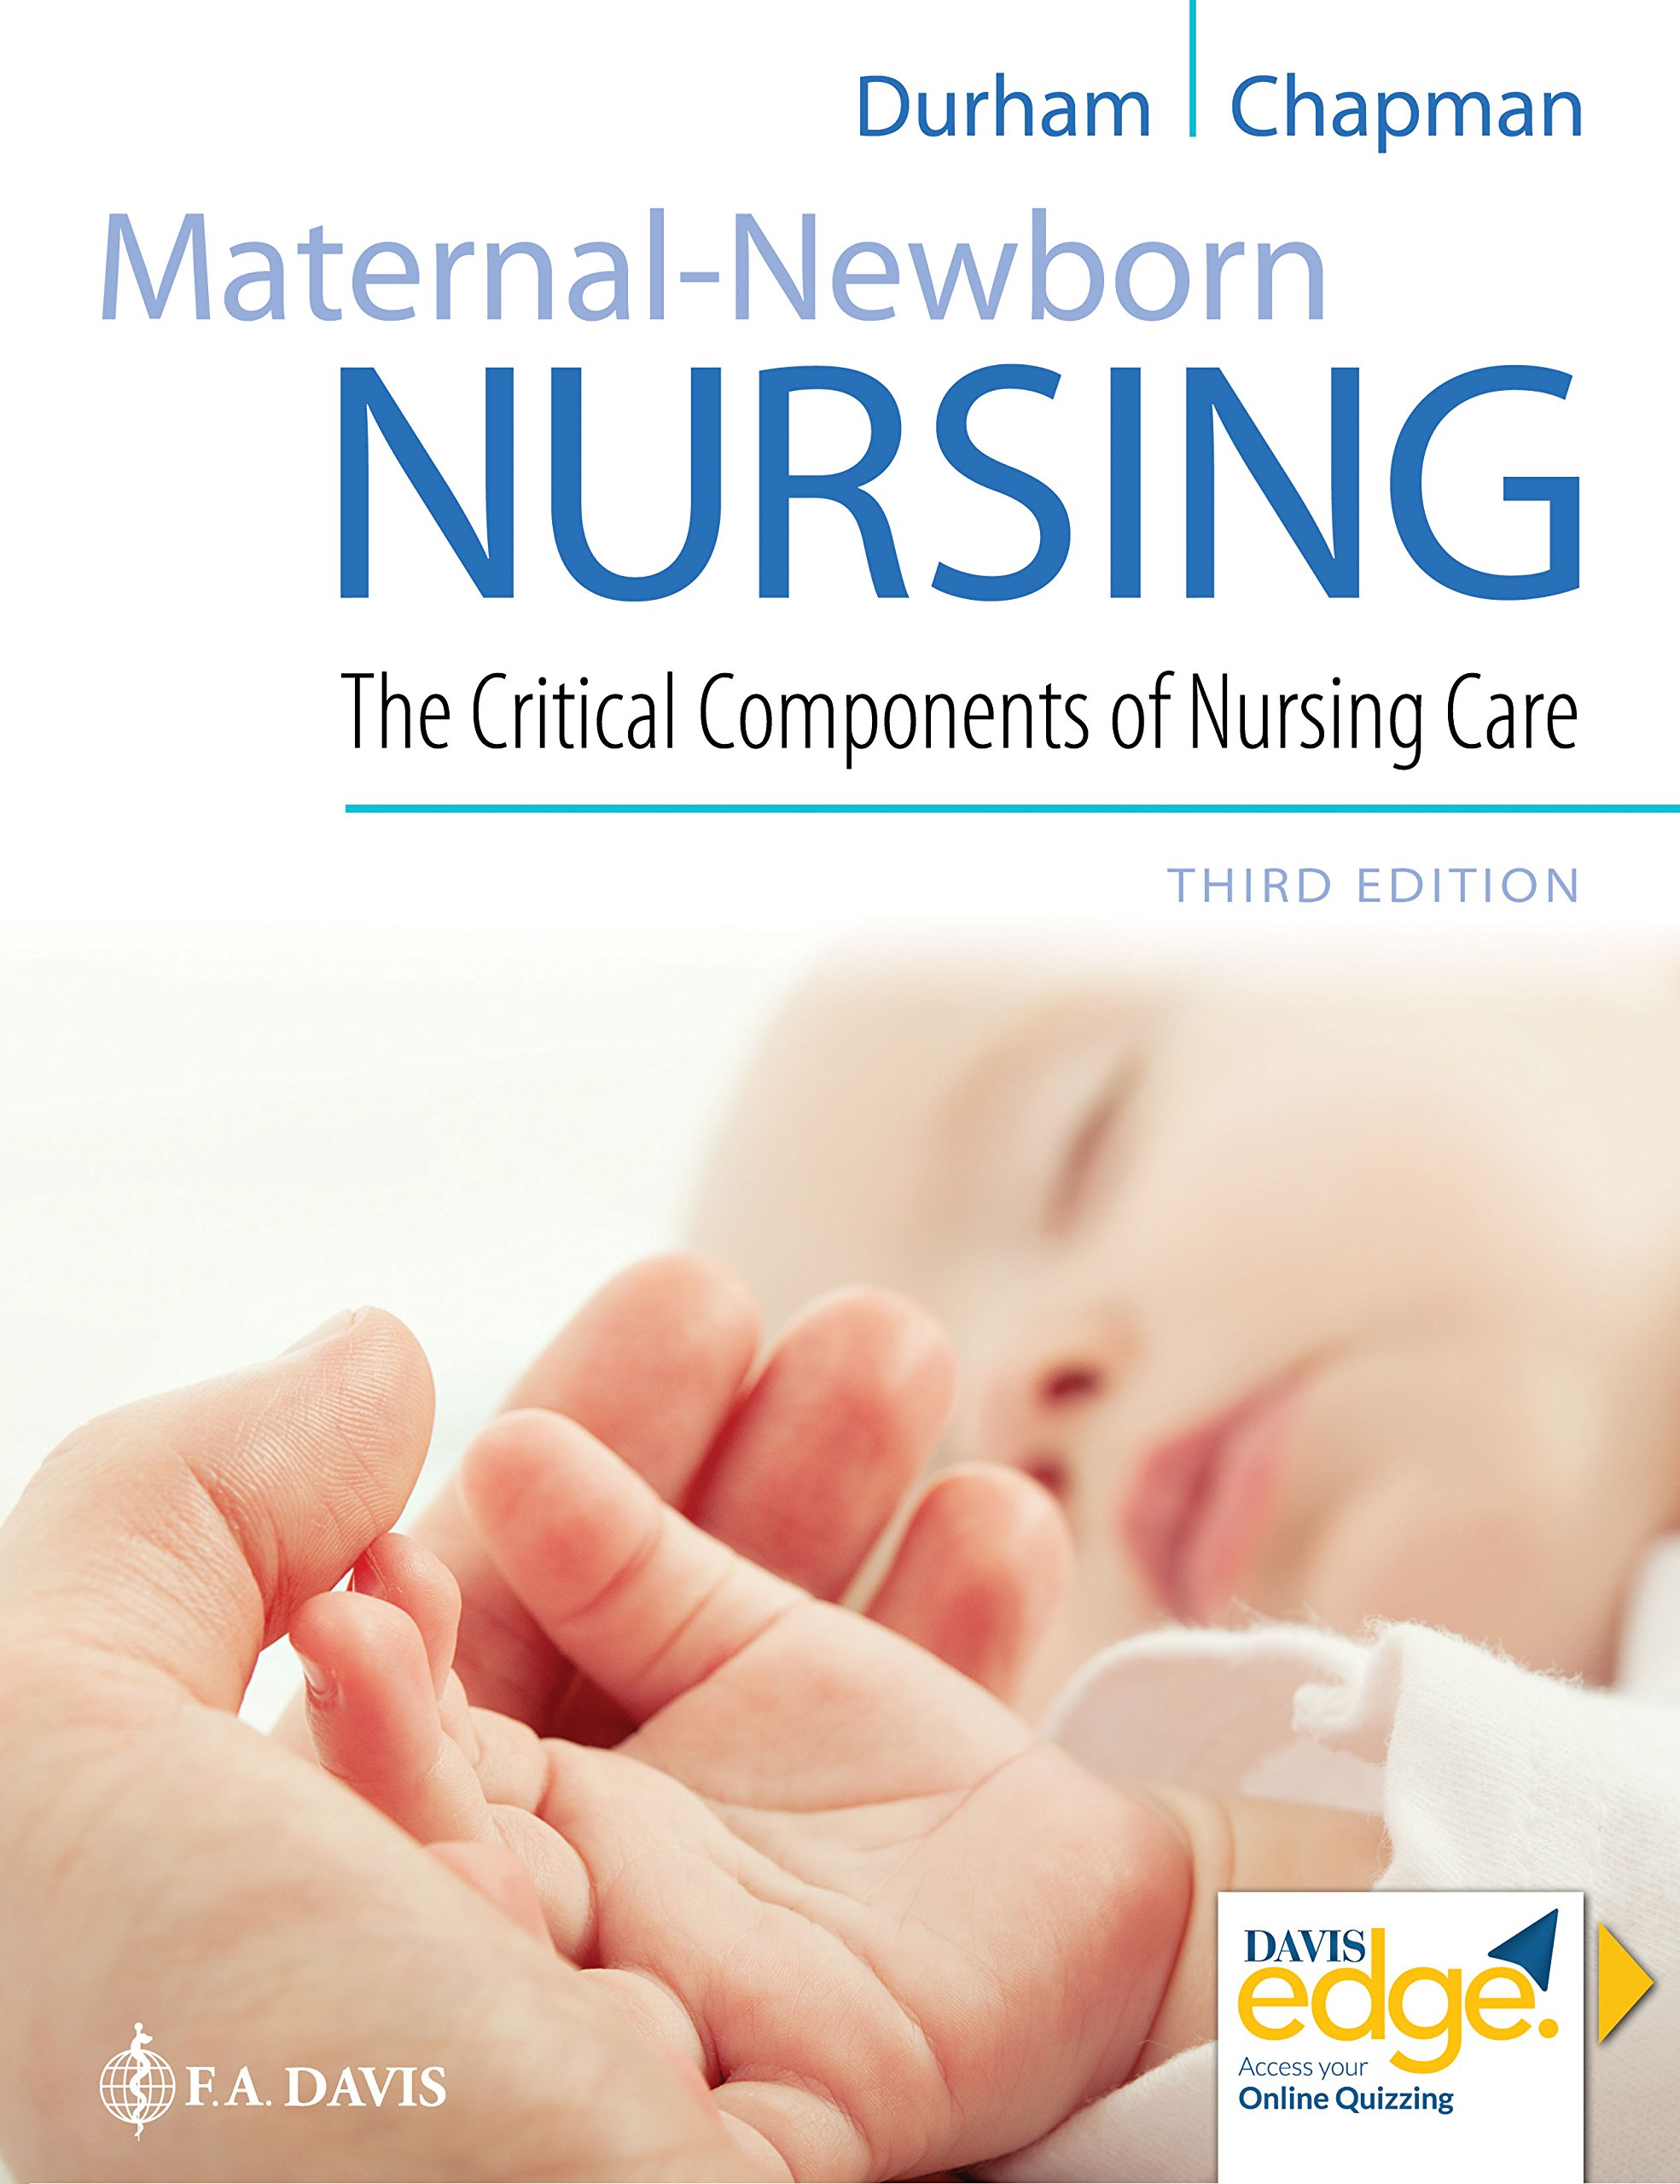 Davis Advantage for Maternal-Newborn Nursing: The Critical Components of Nursing Care